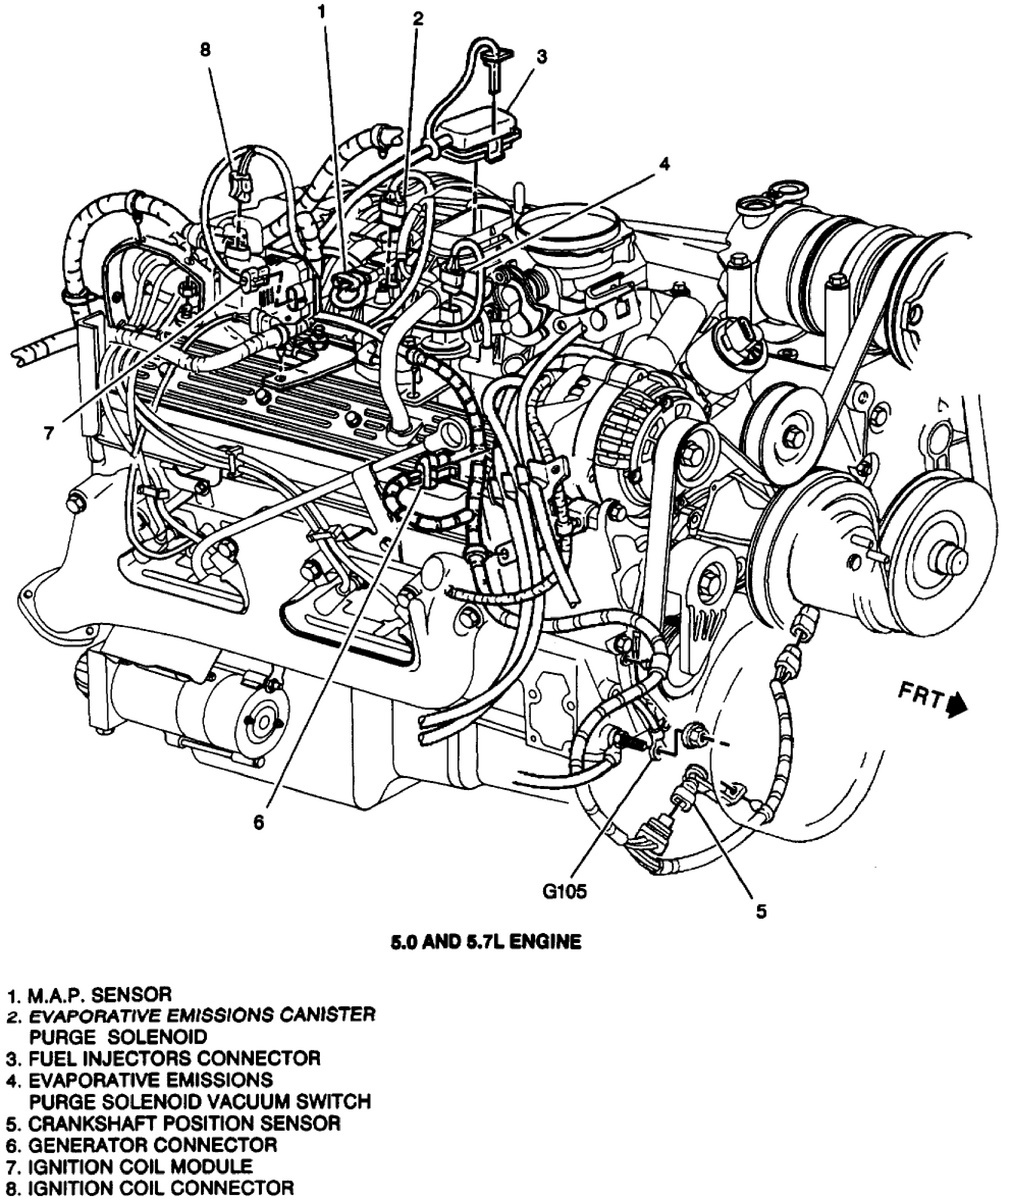 VT_2611] Chevy 1500 Wiring Diagram Wiring Diagram For 1997 Chevy Silverado  Download DiagramPhil Benkeme Mohammedshrine Librar Wiring 101